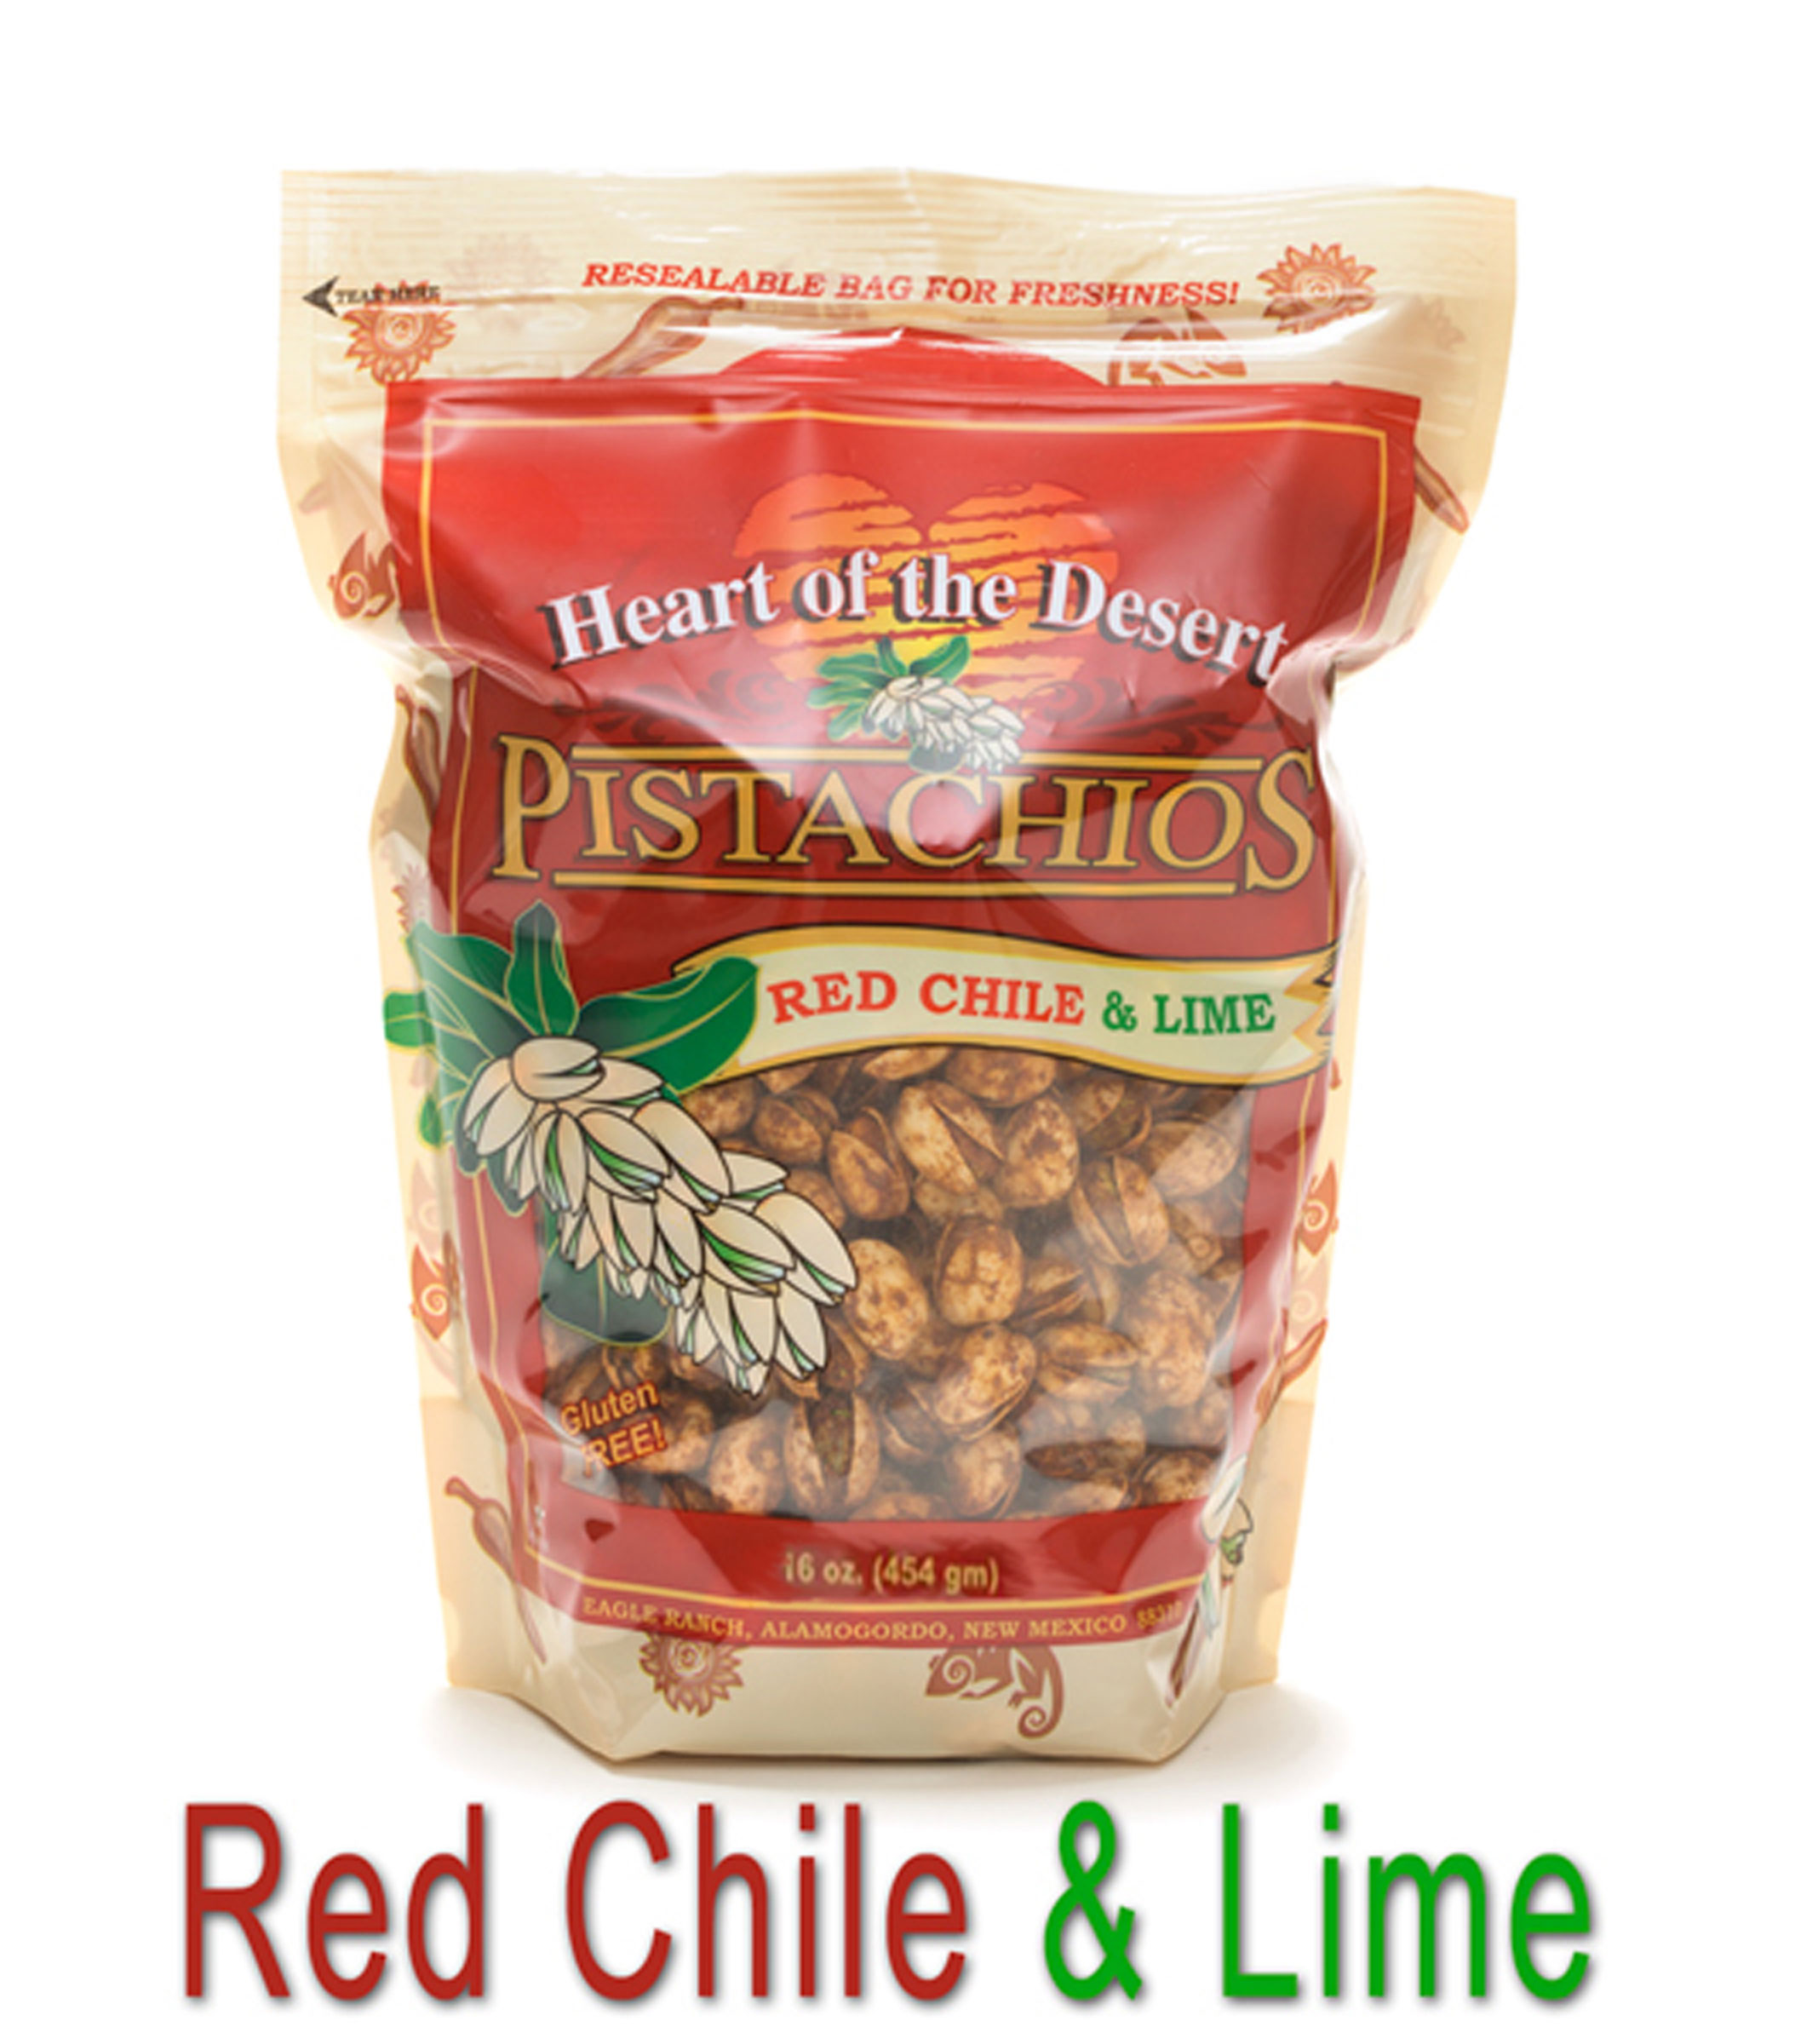 Heart of the Desert Red Chile & Lime Pistachios (In-Shell)